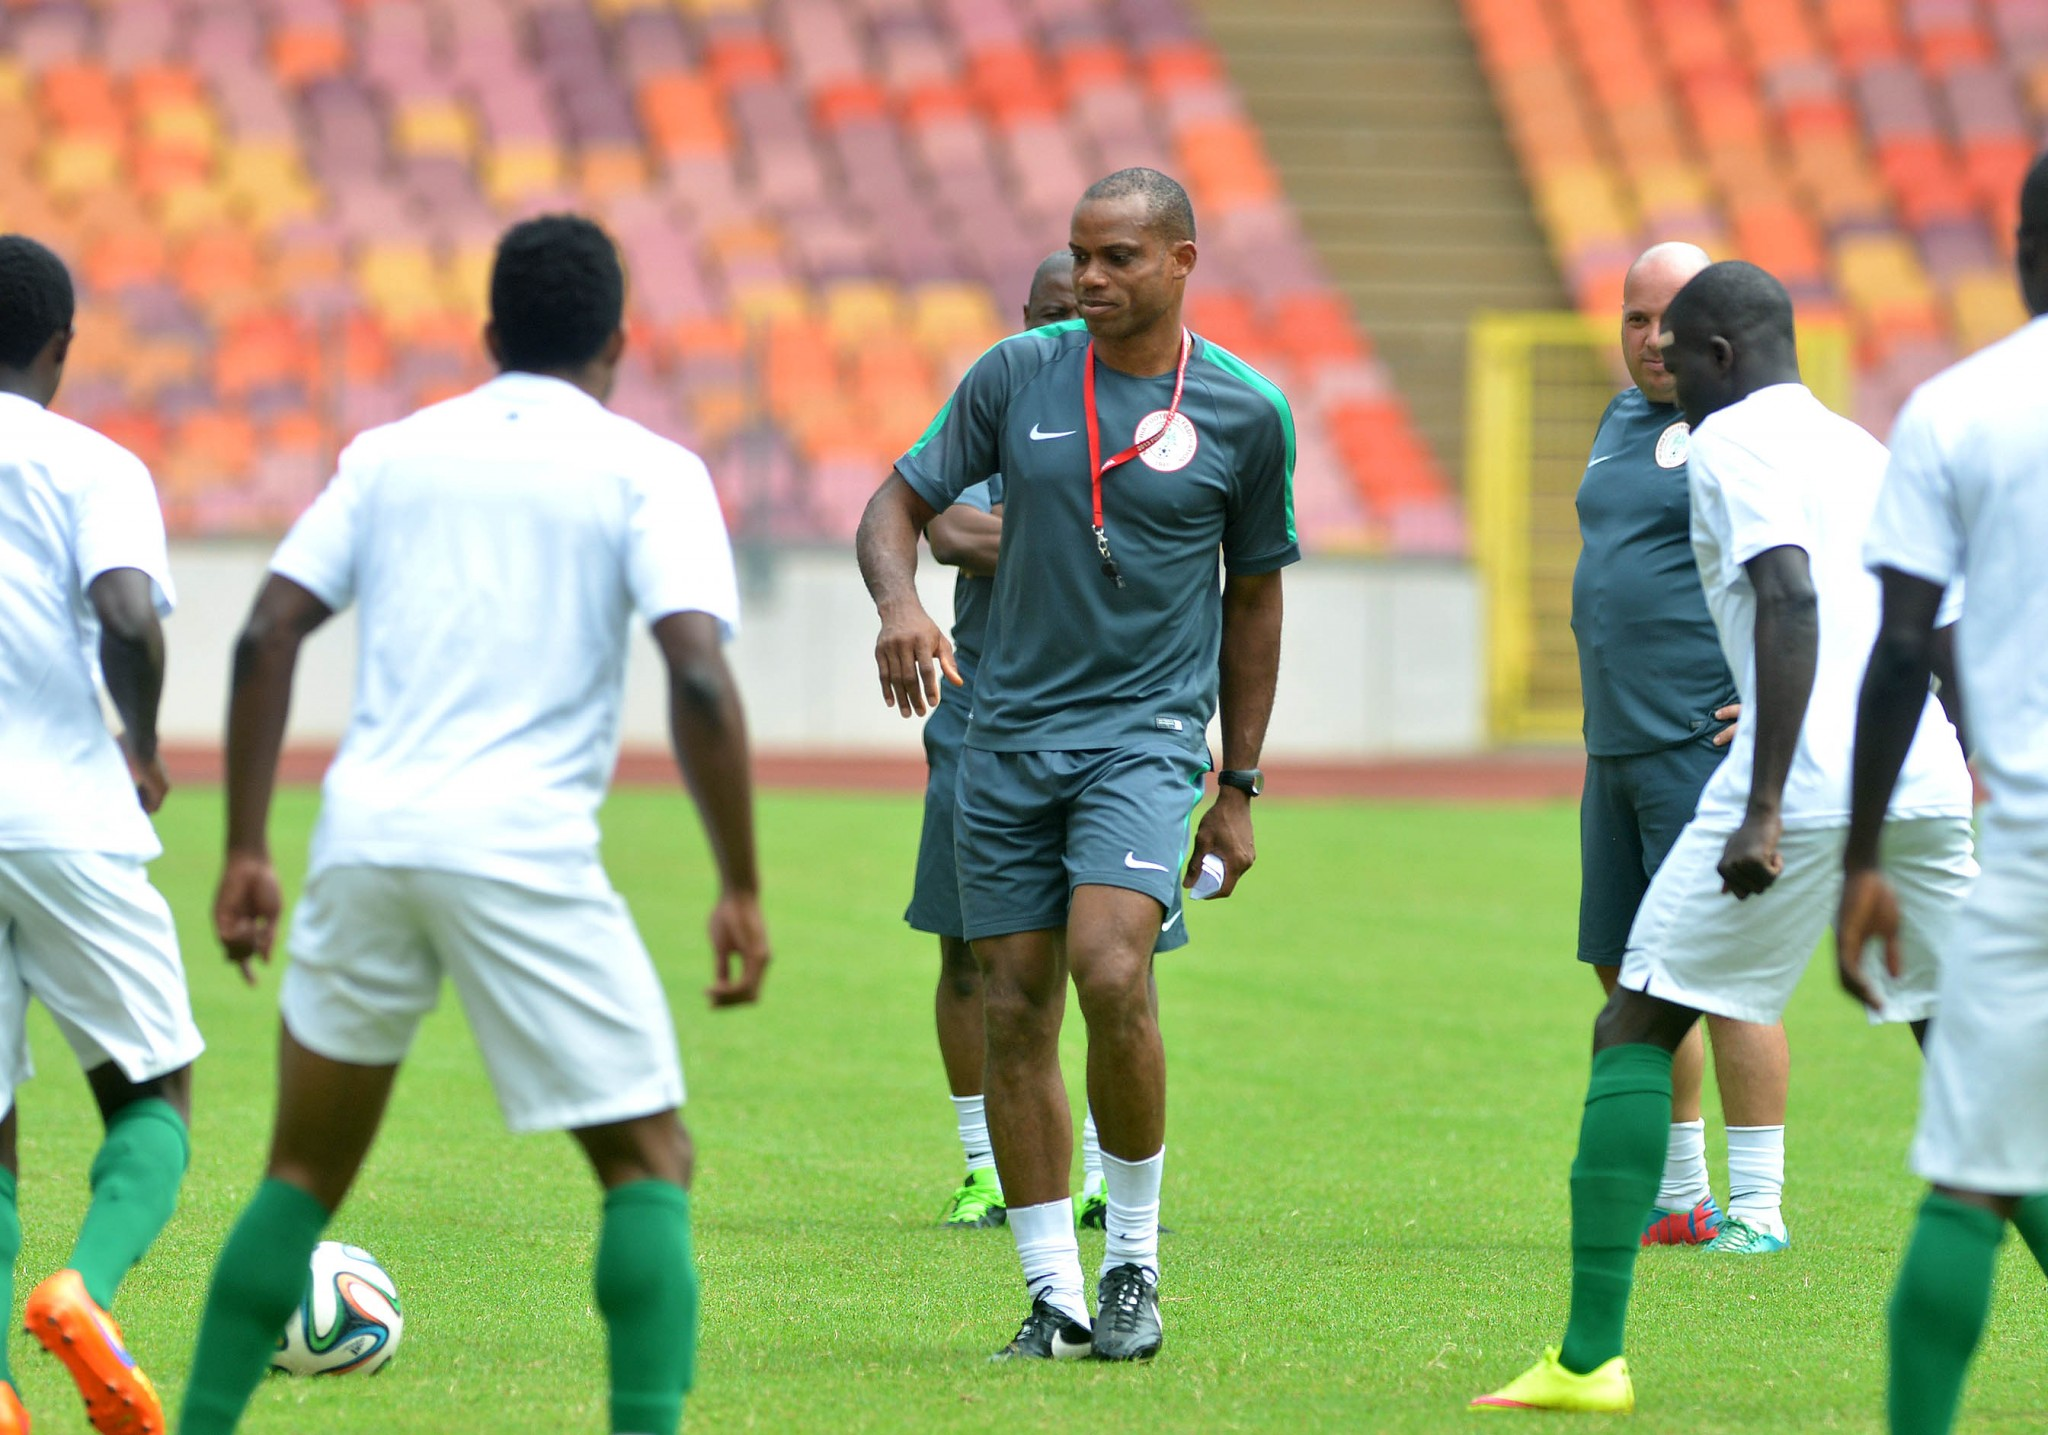 We will play in relaxed mood against Algeria - Siasia